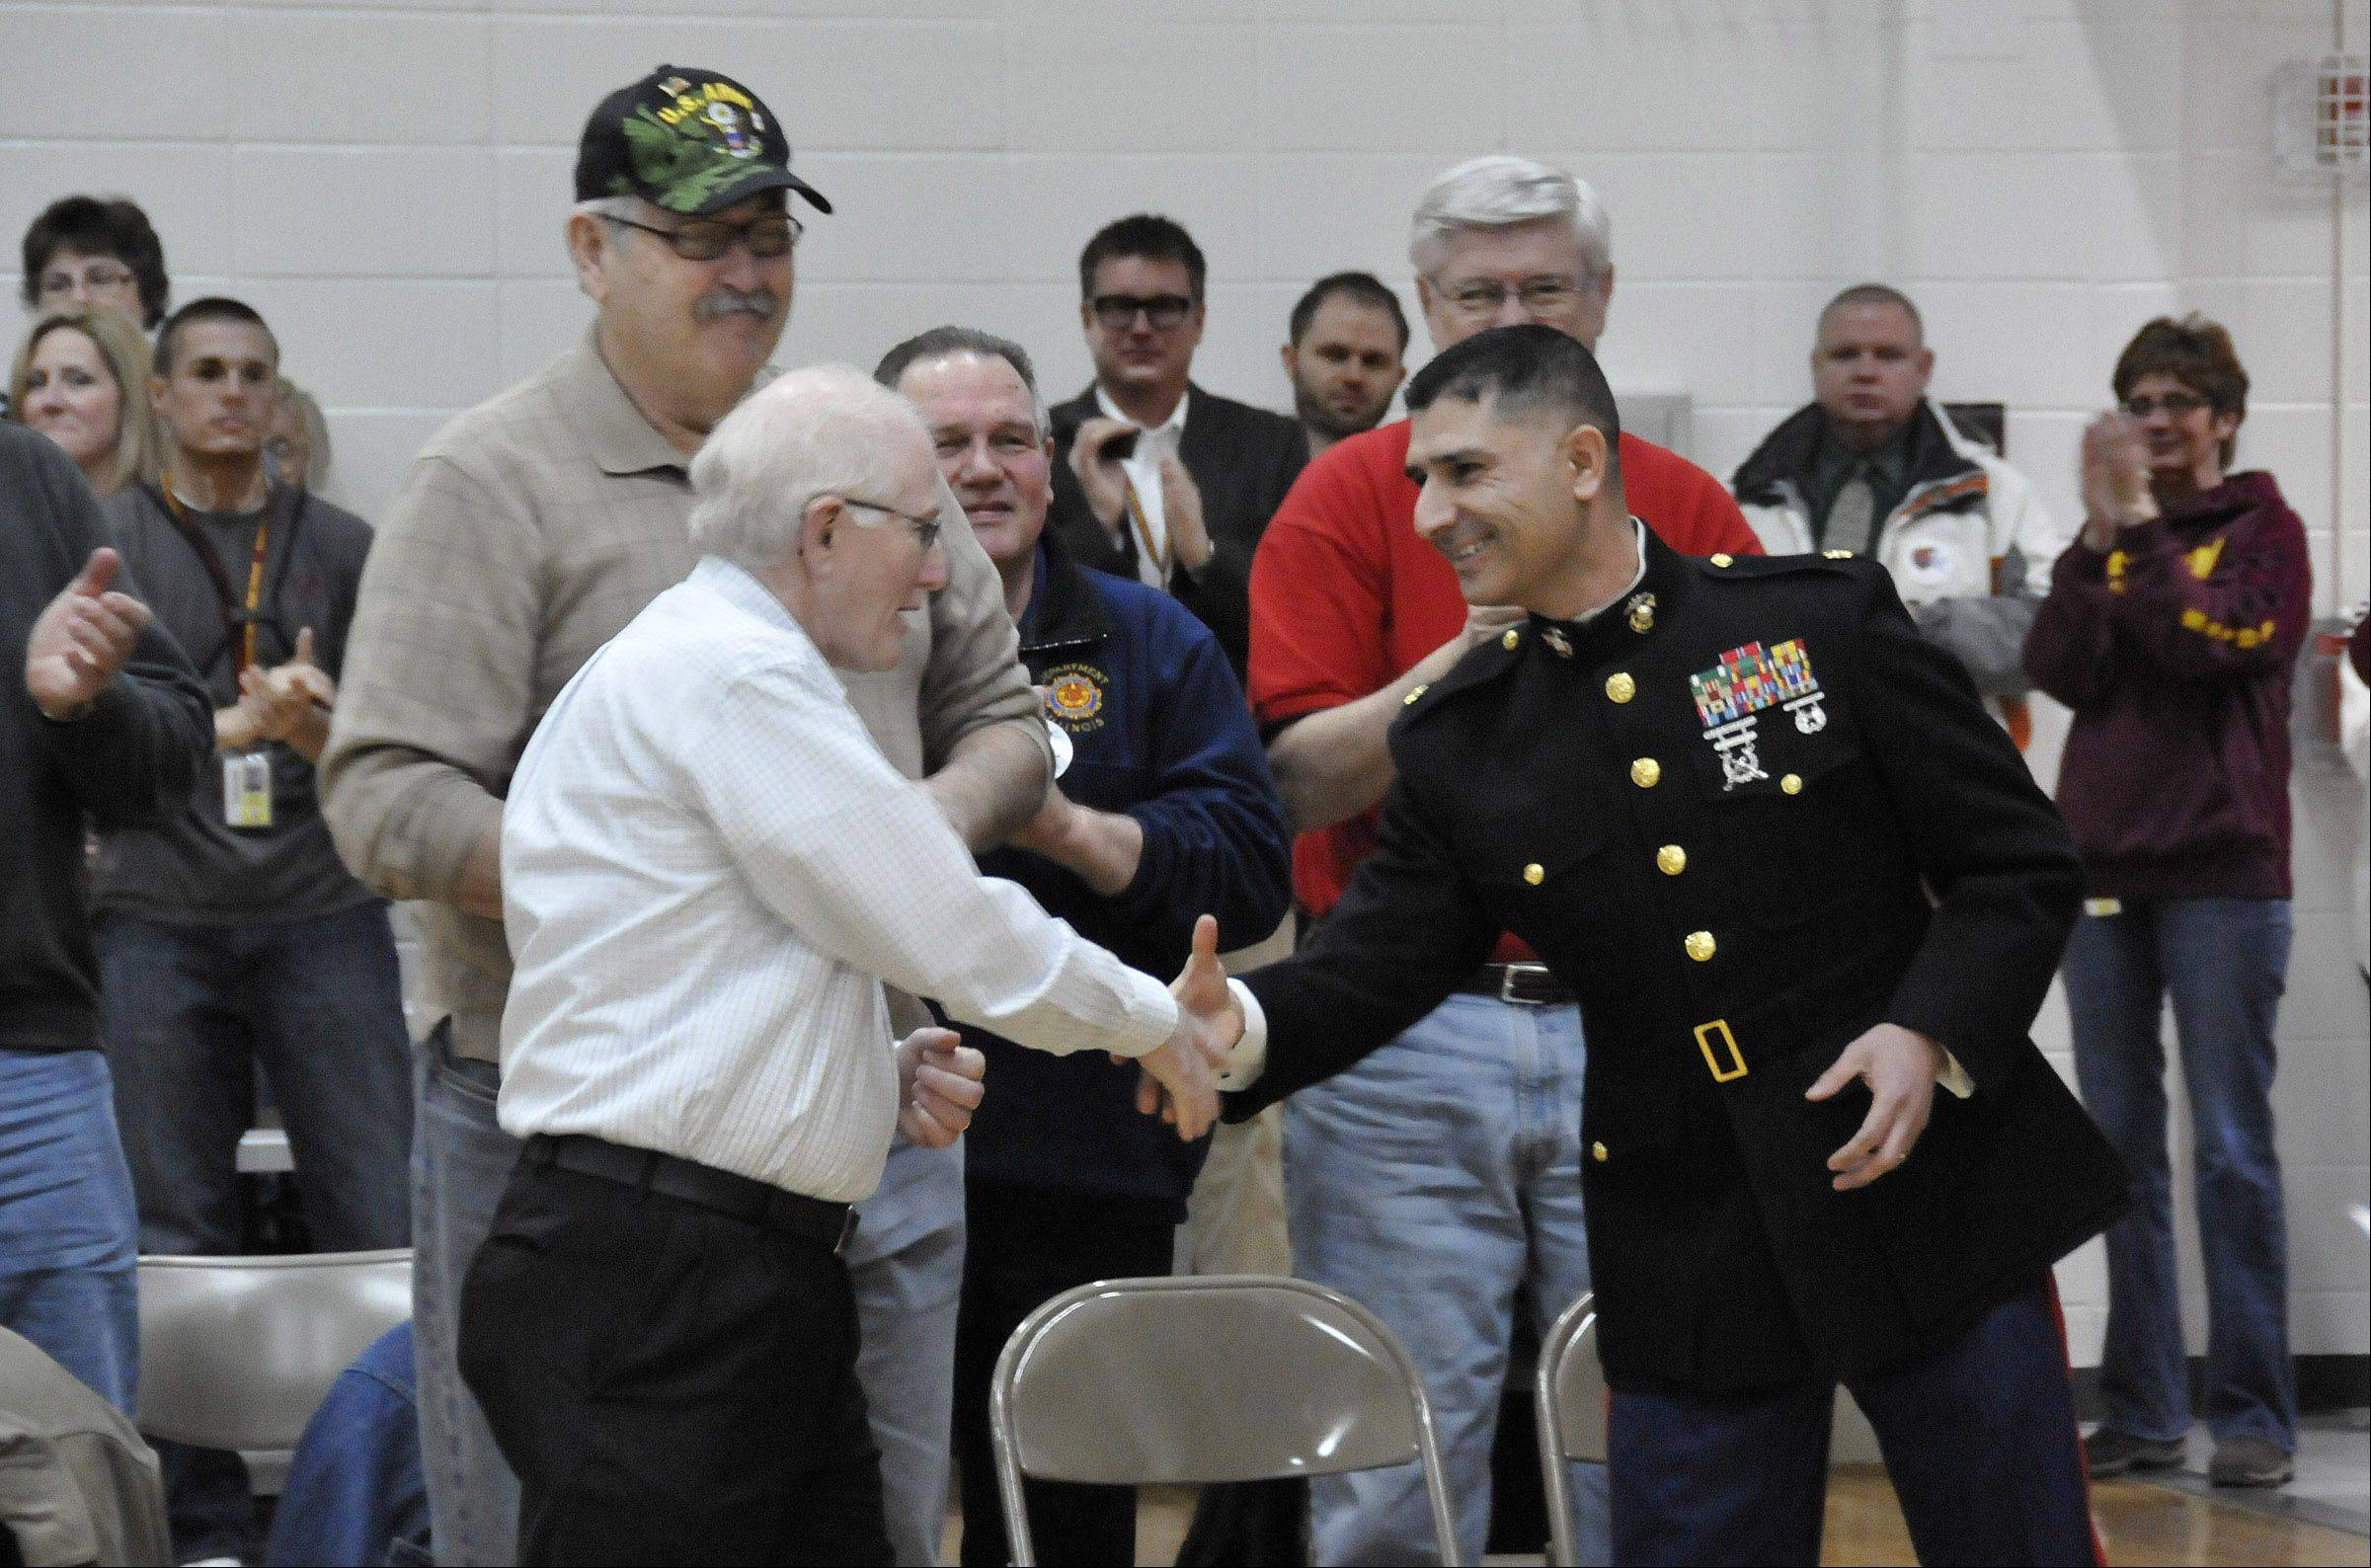 Marine Maj. Guillermo Rosales greeted a small group of veterans in attendance Friday for his presentation at Kennedy Junior High School.